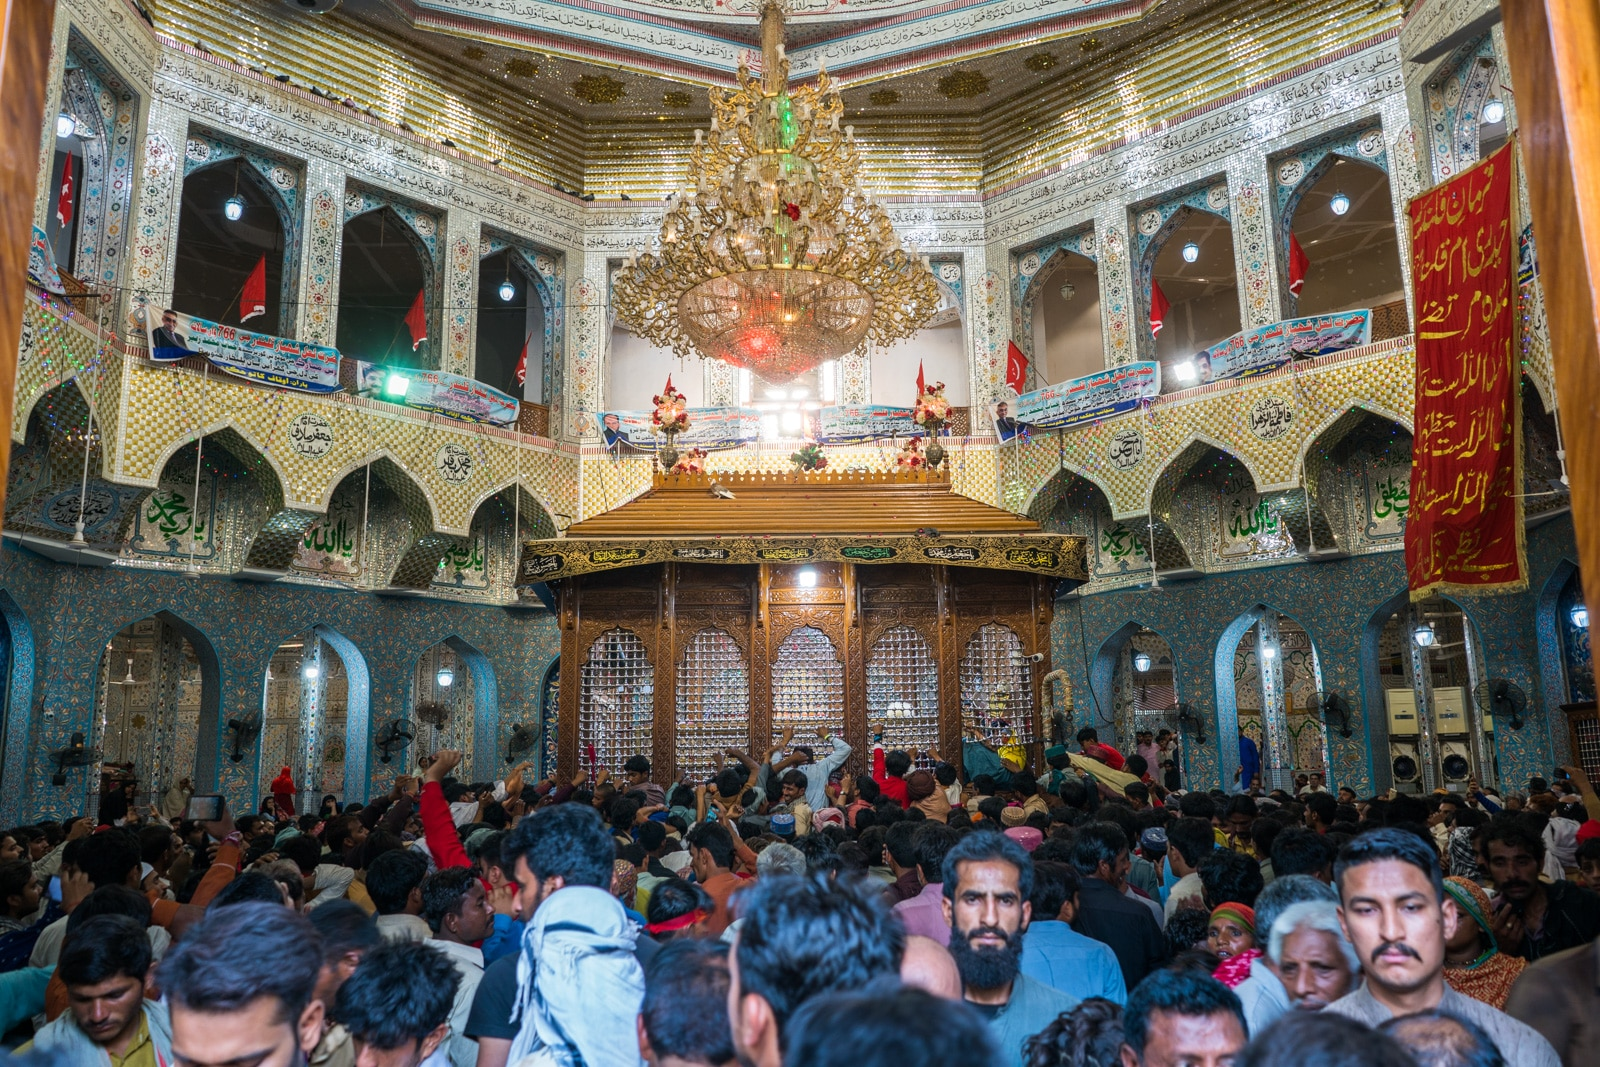 The Urs of Lal Shahbaz Qalandar in Sehwan, Pakistan - Crowds inside shrine - Lost With Purpose travel blog